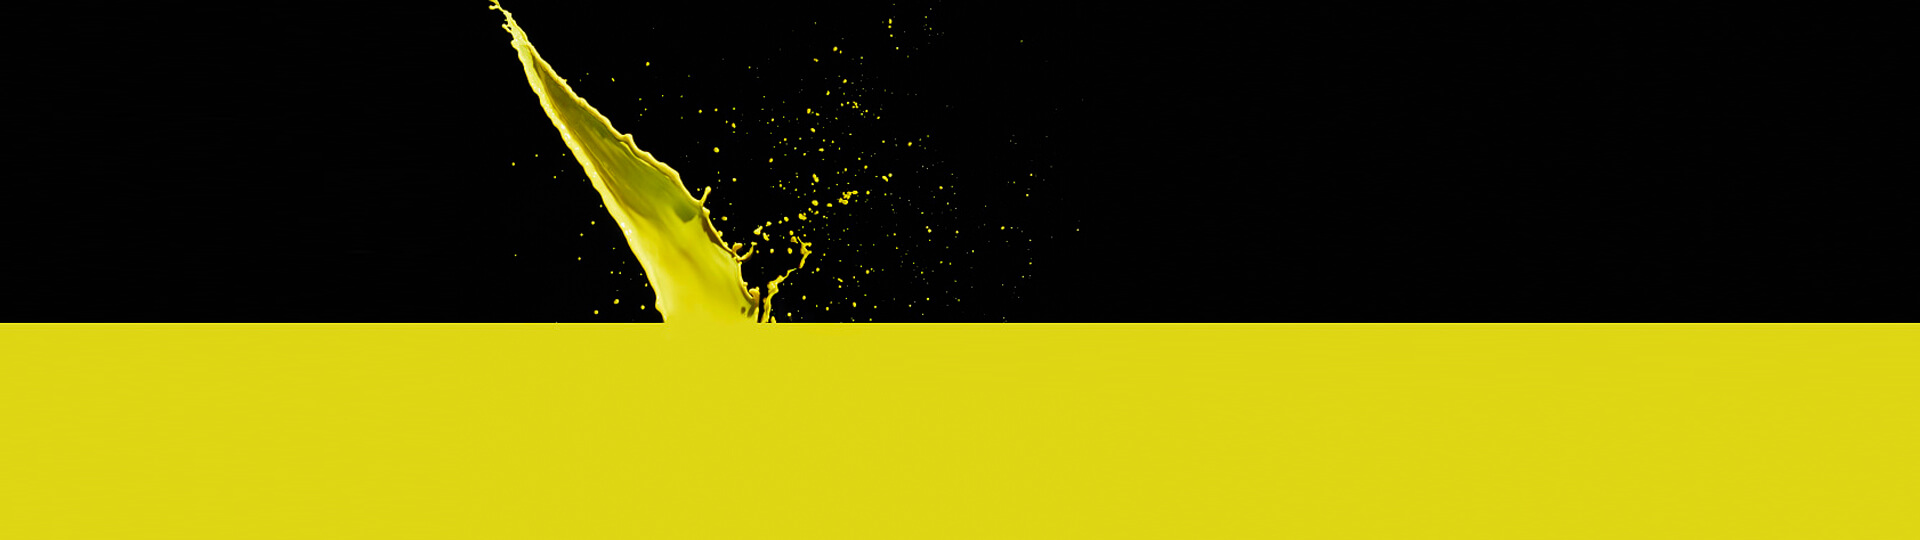 pigment yellow banner-2